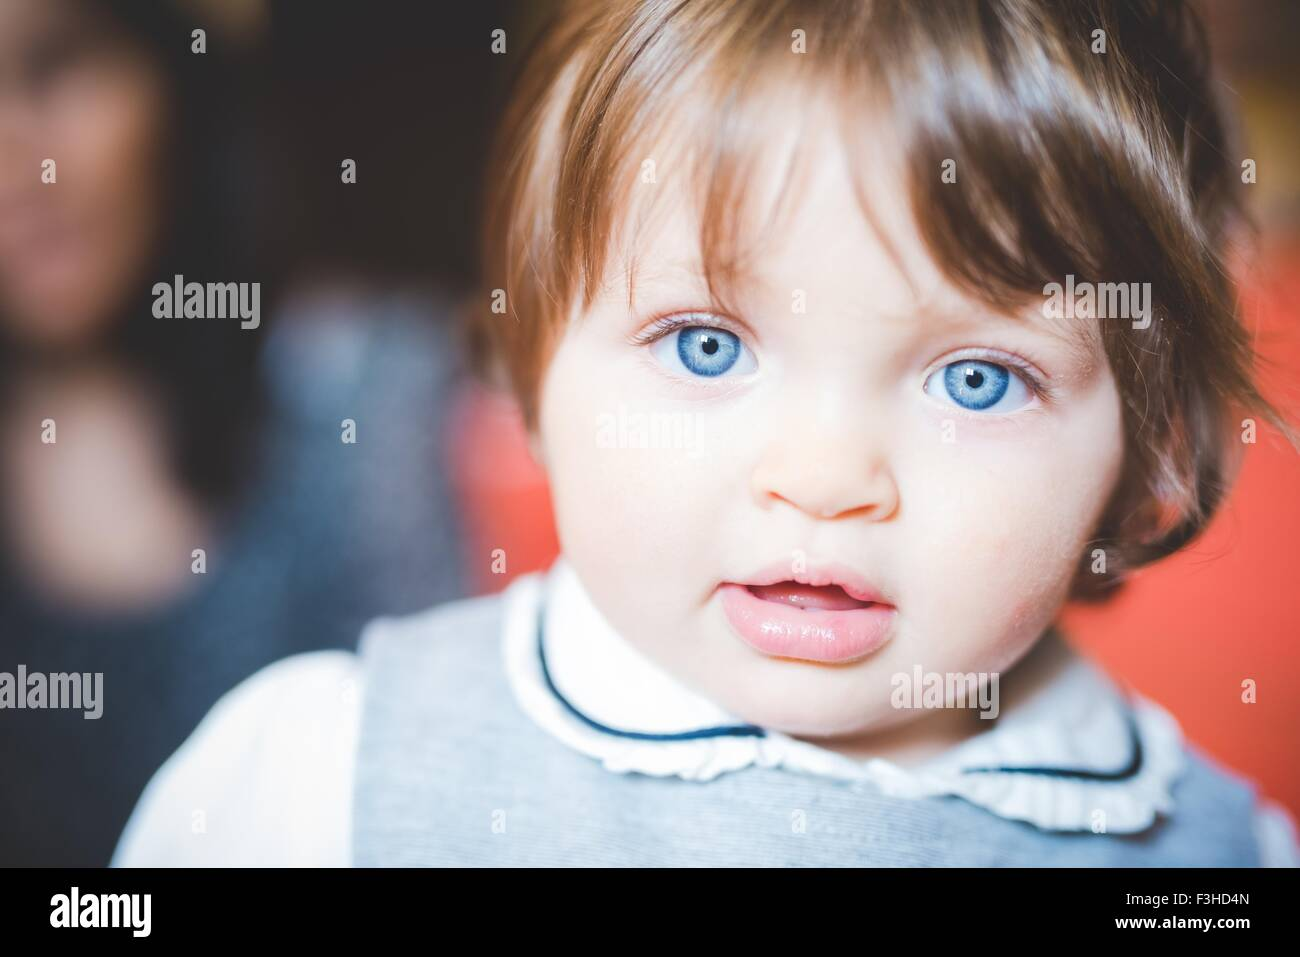 Close up portrait of female toddler with blue eyes - Stock Image